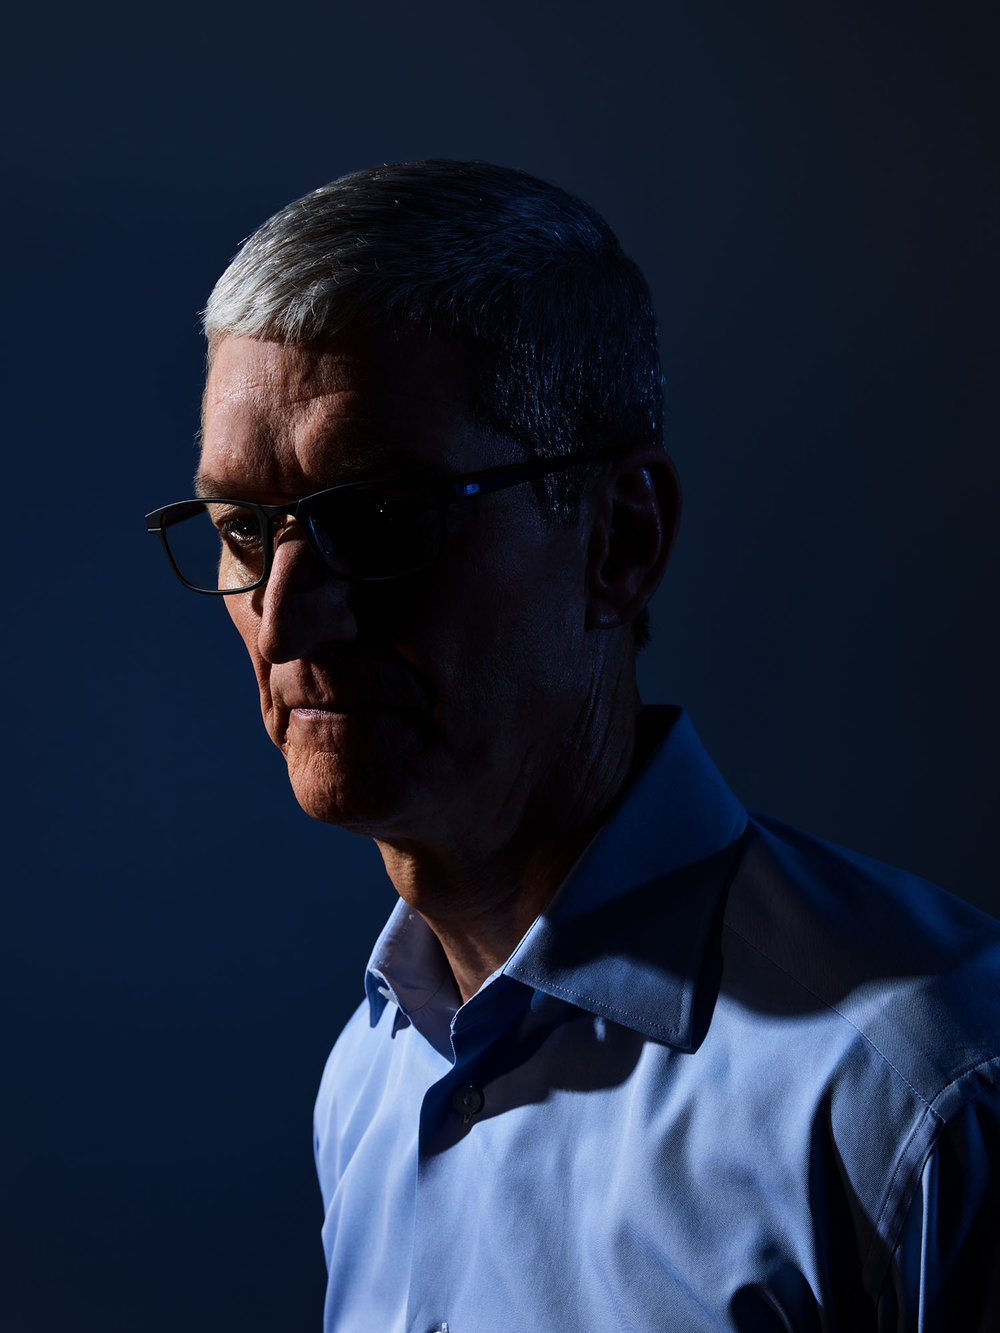 Tim Cook, CEO of Apple, Cupertino, California, 2017